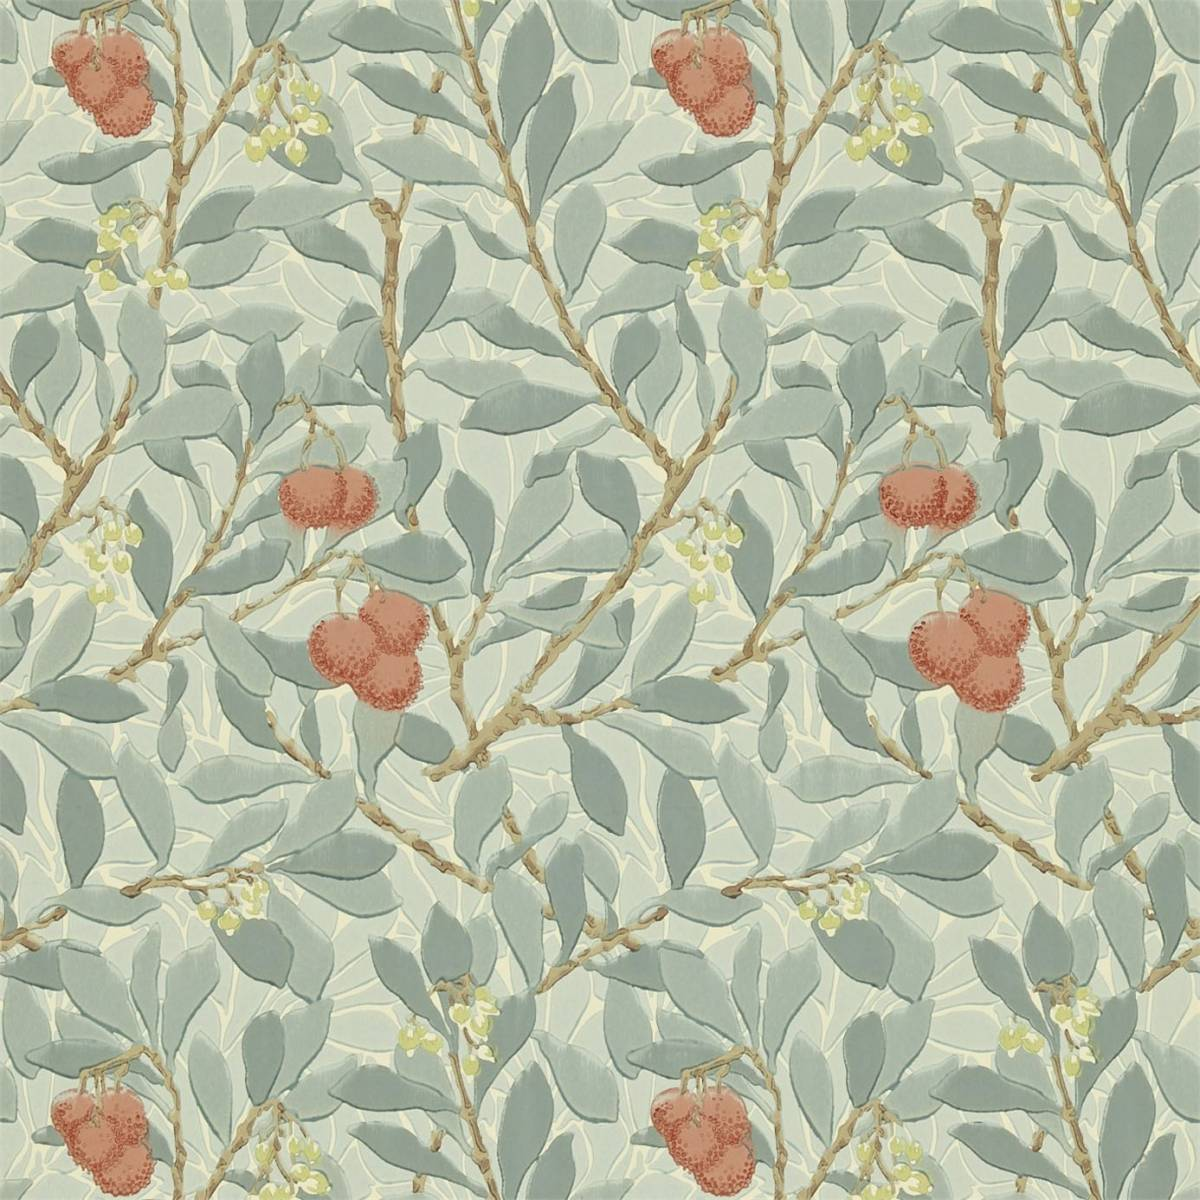 Arbutus Wallpaper  Blue\/Pink 210407  William Morris  Co Compendium II Wallpapers Collection